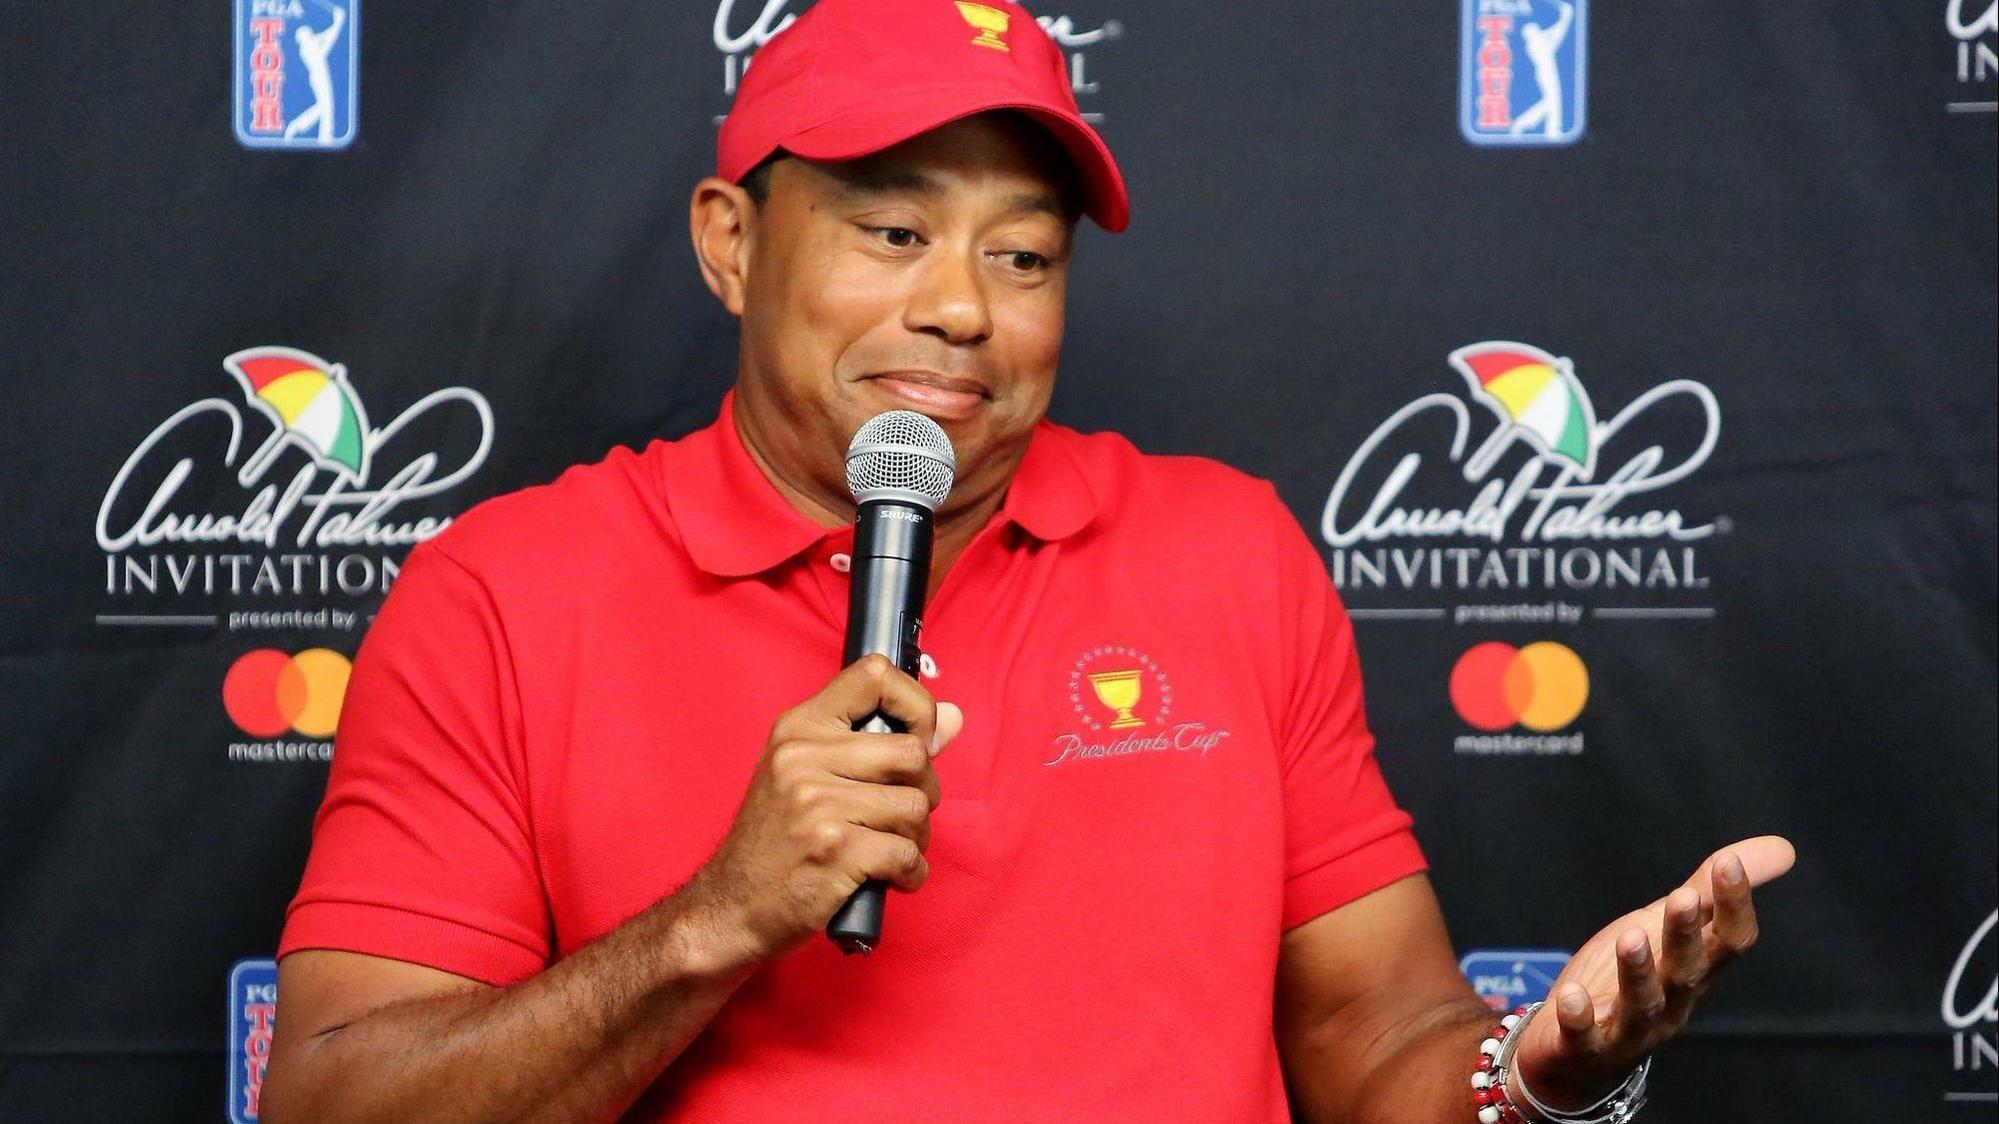 tiger woods enters bay hill eyeing spot as player